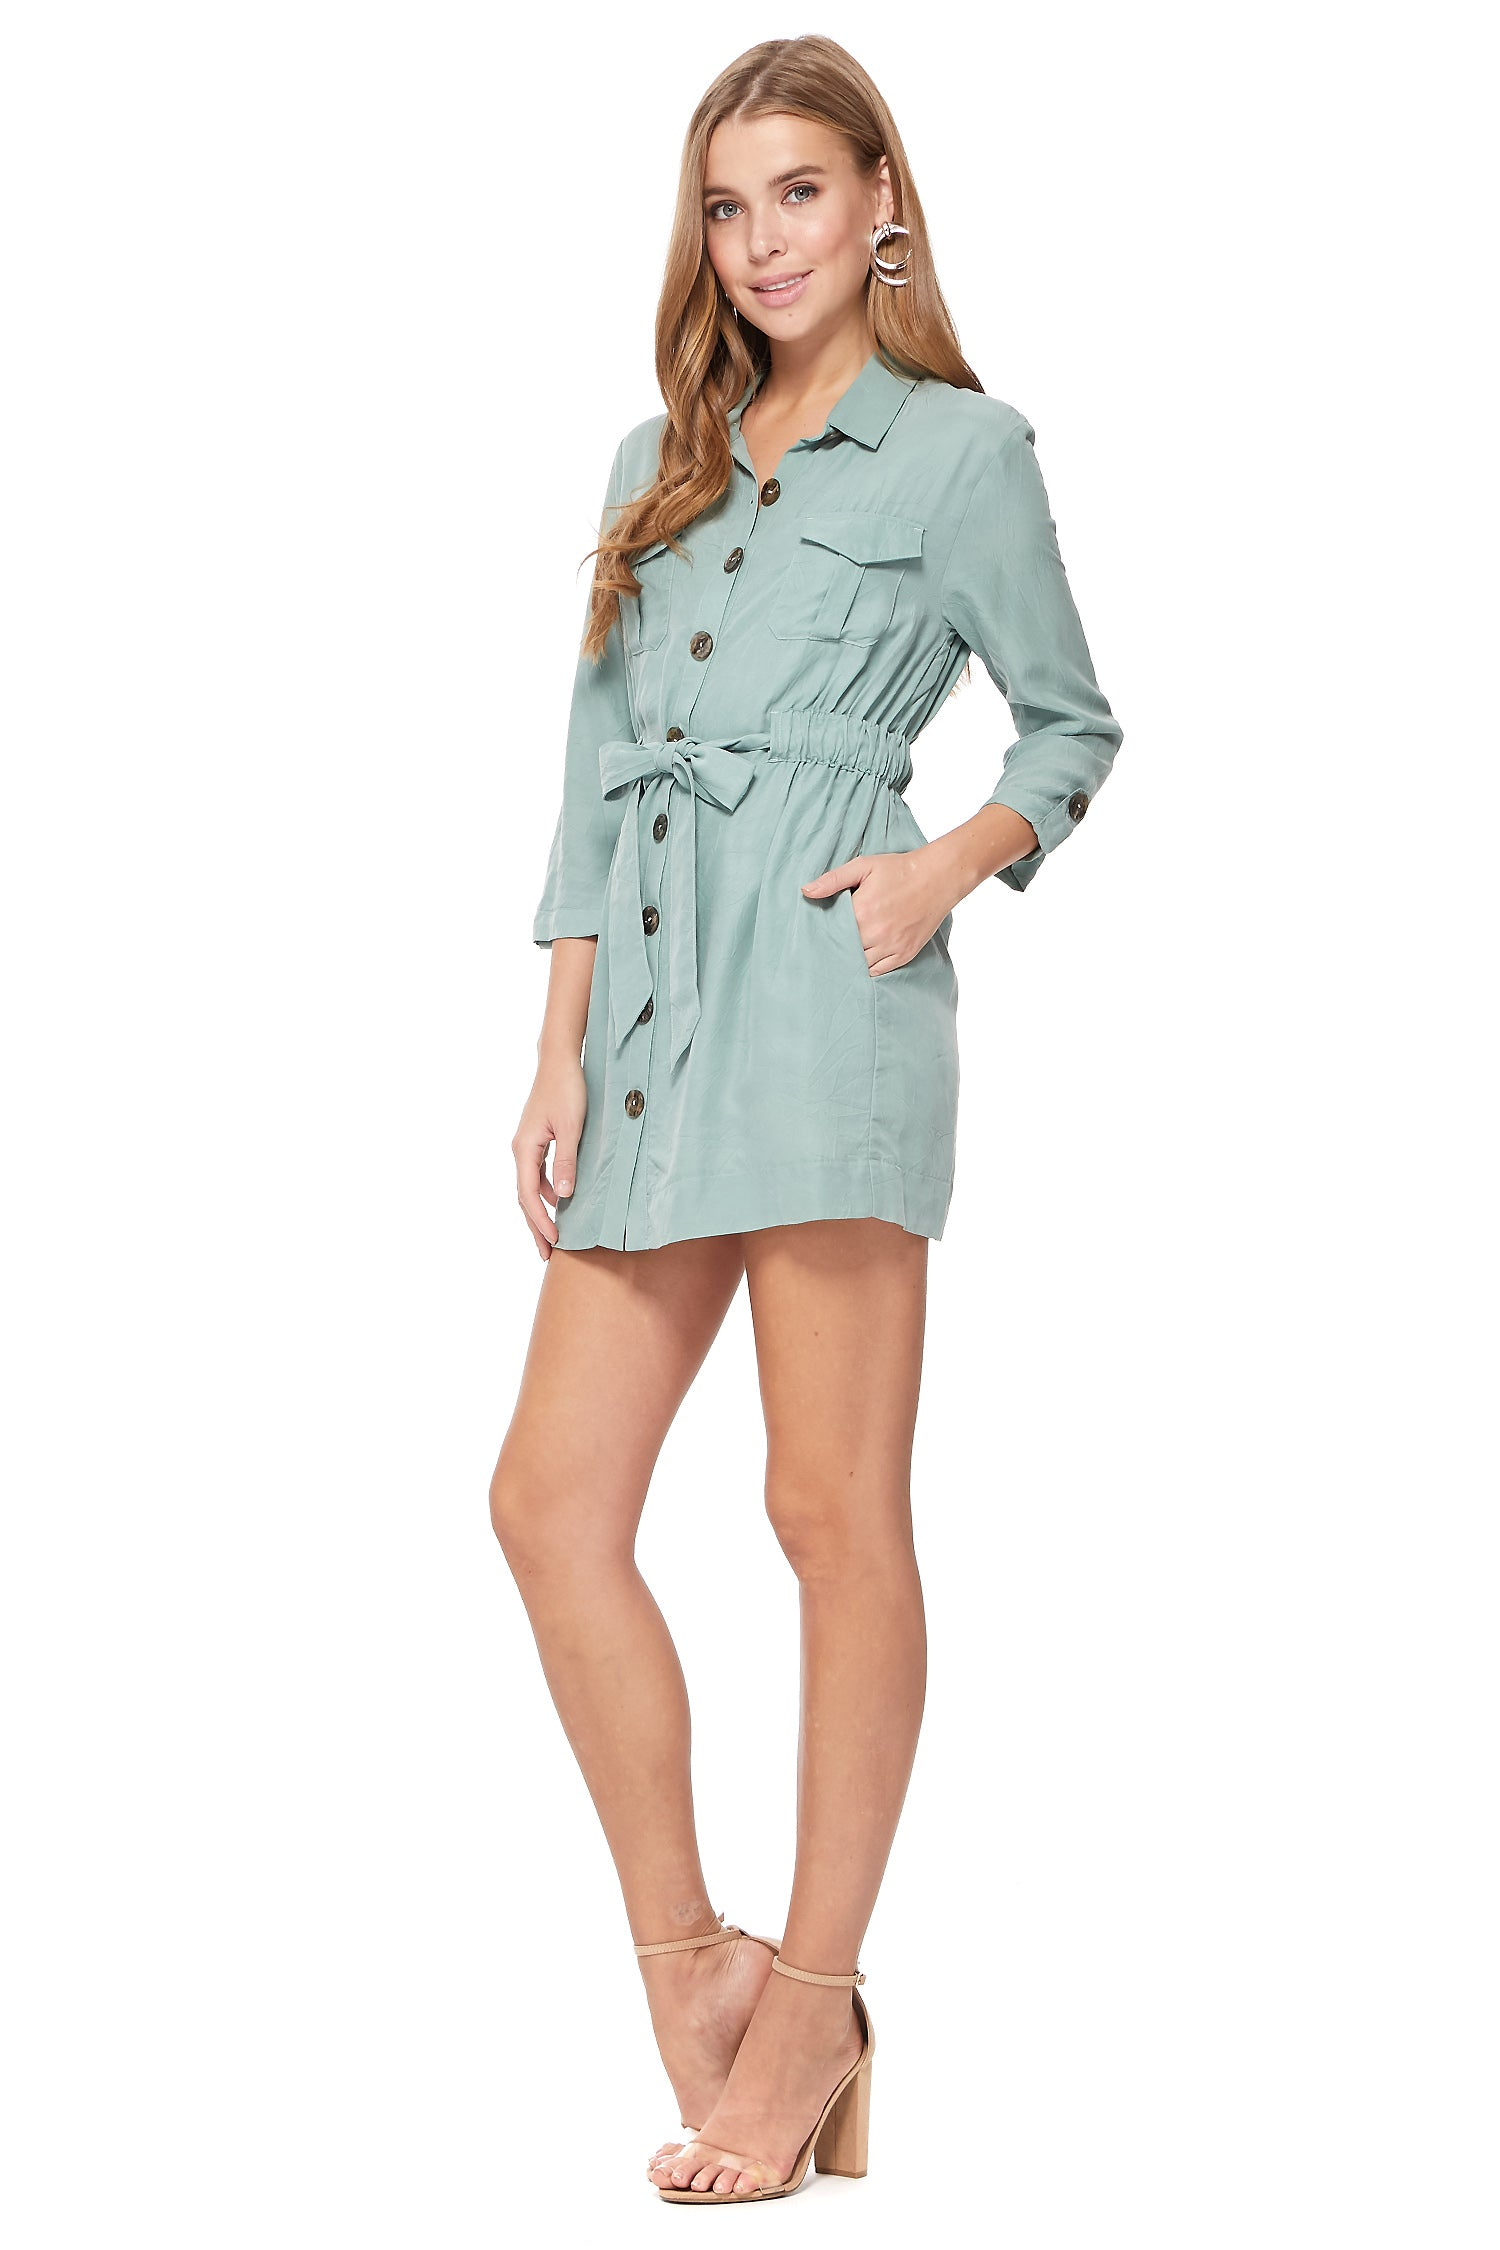 Sabrina Mini Dress in Sage